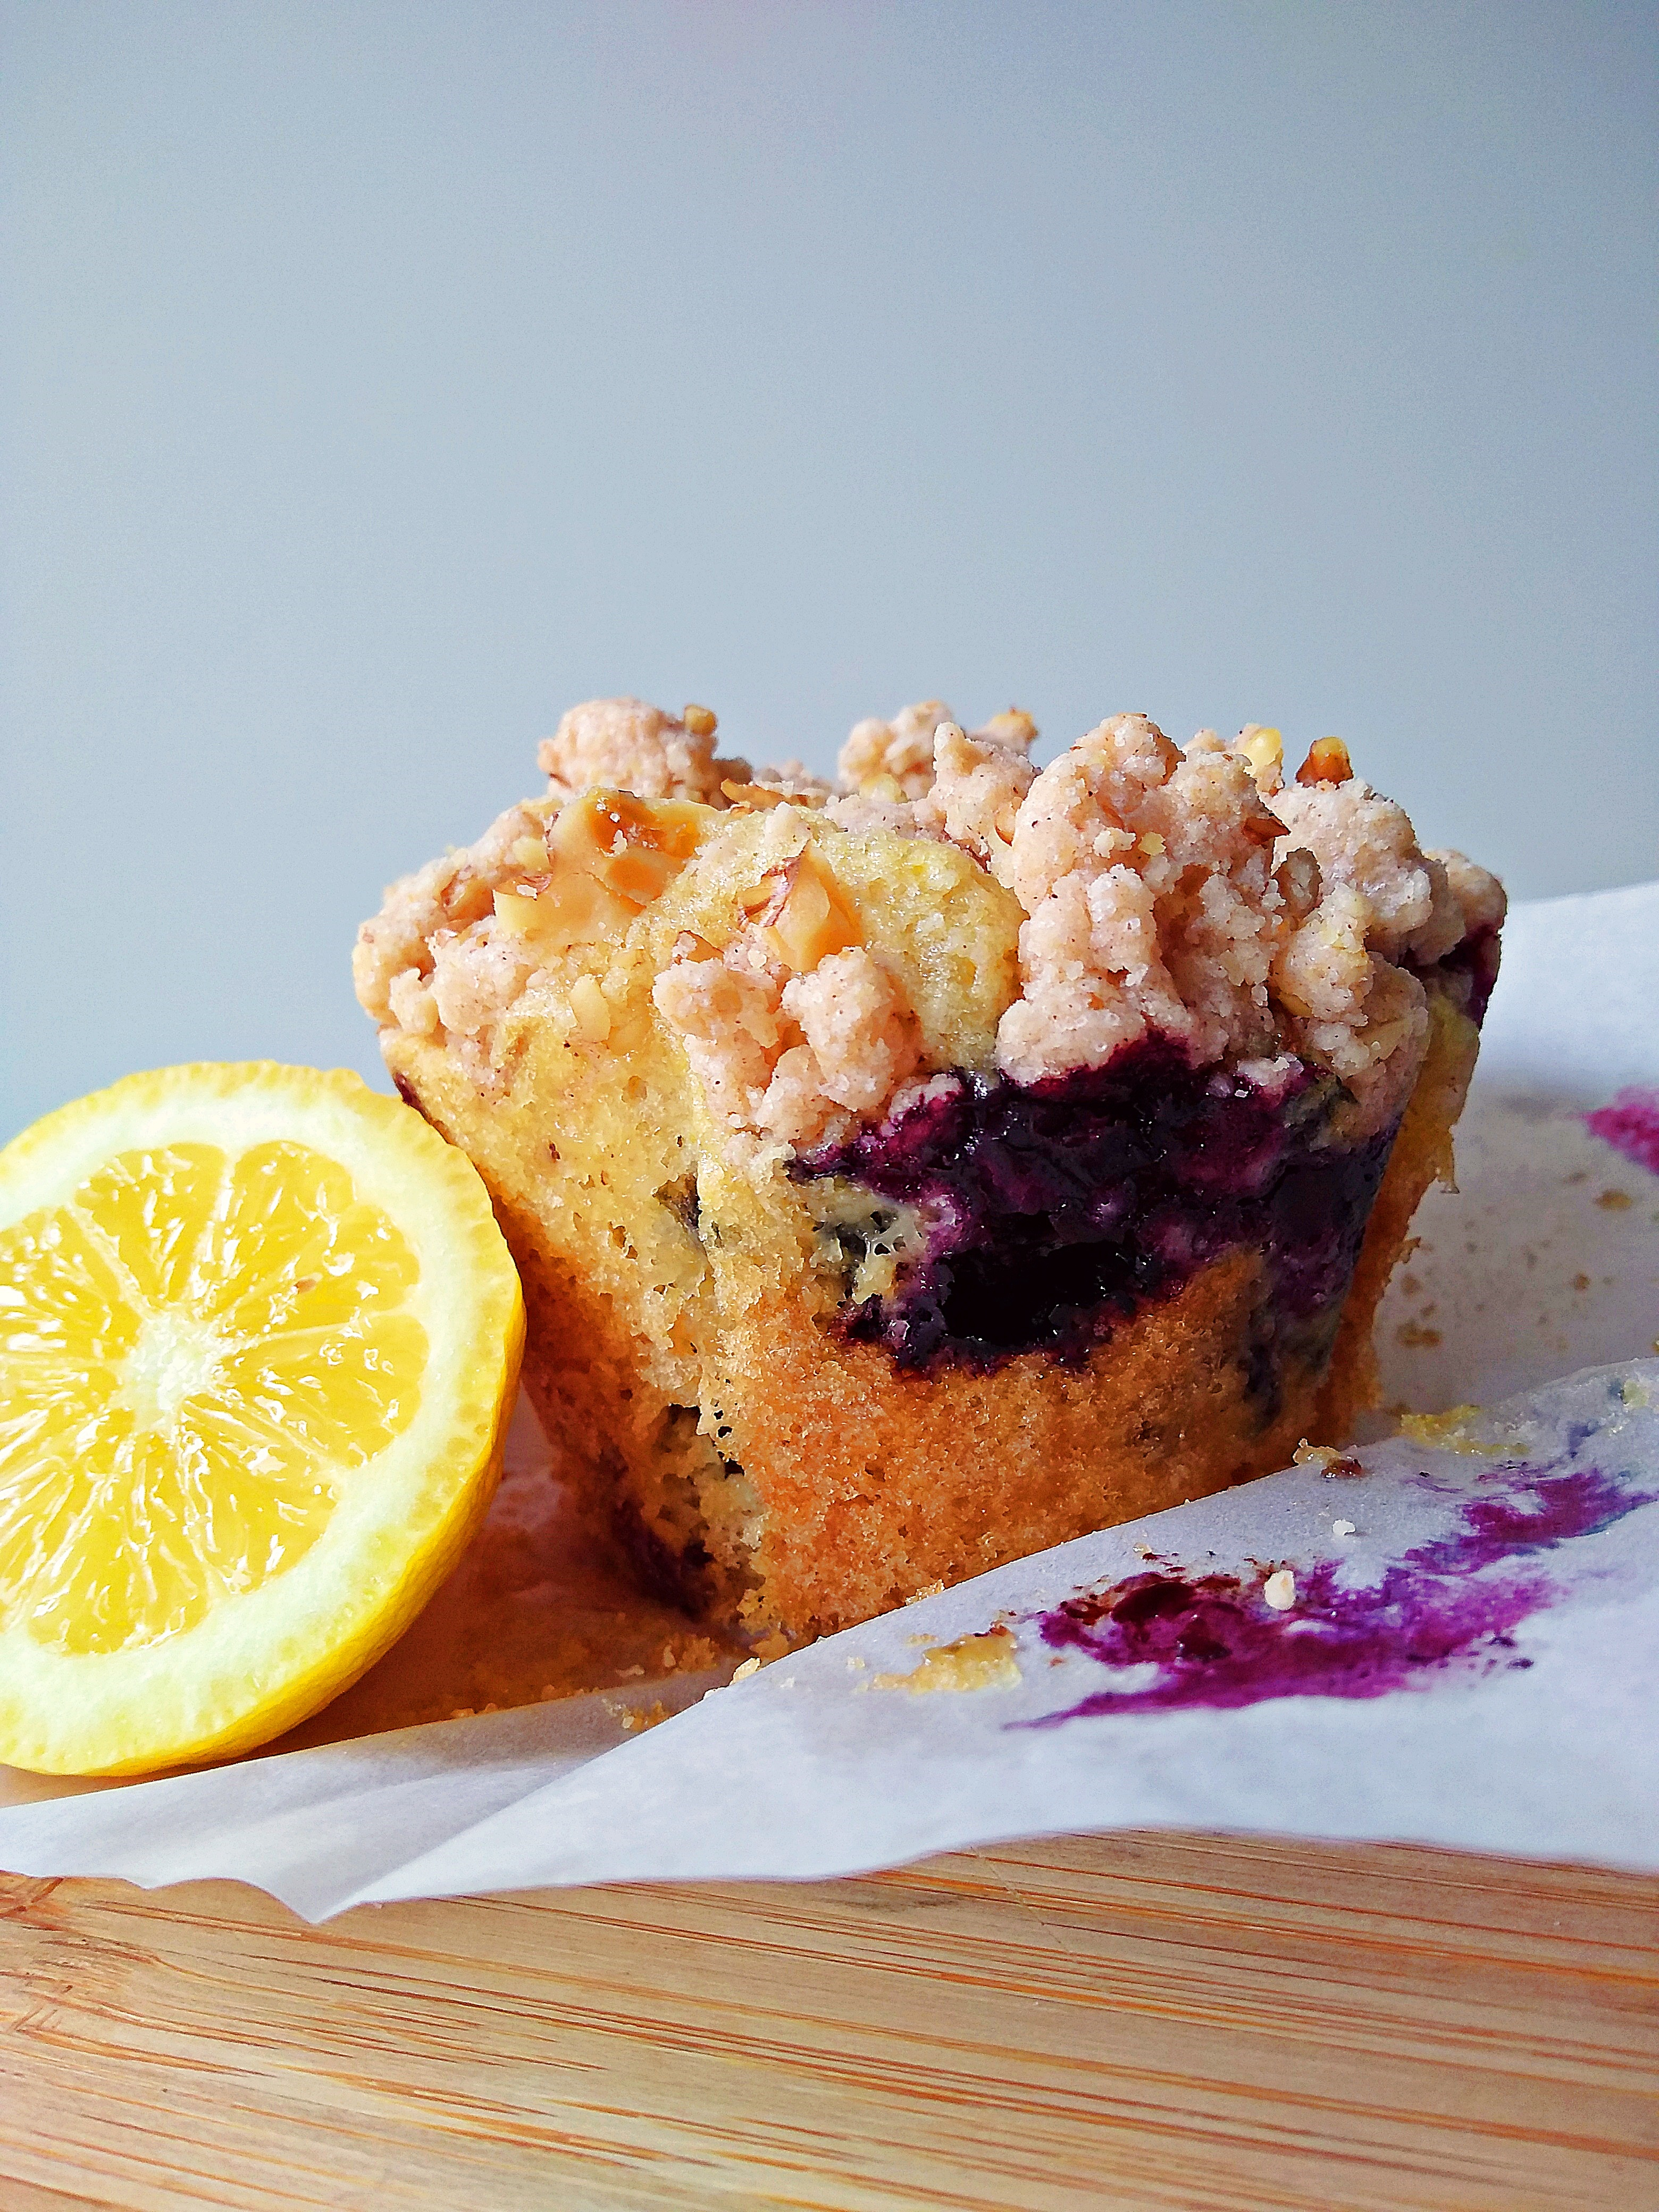 Lemon and Blueberry Crumble Muffins